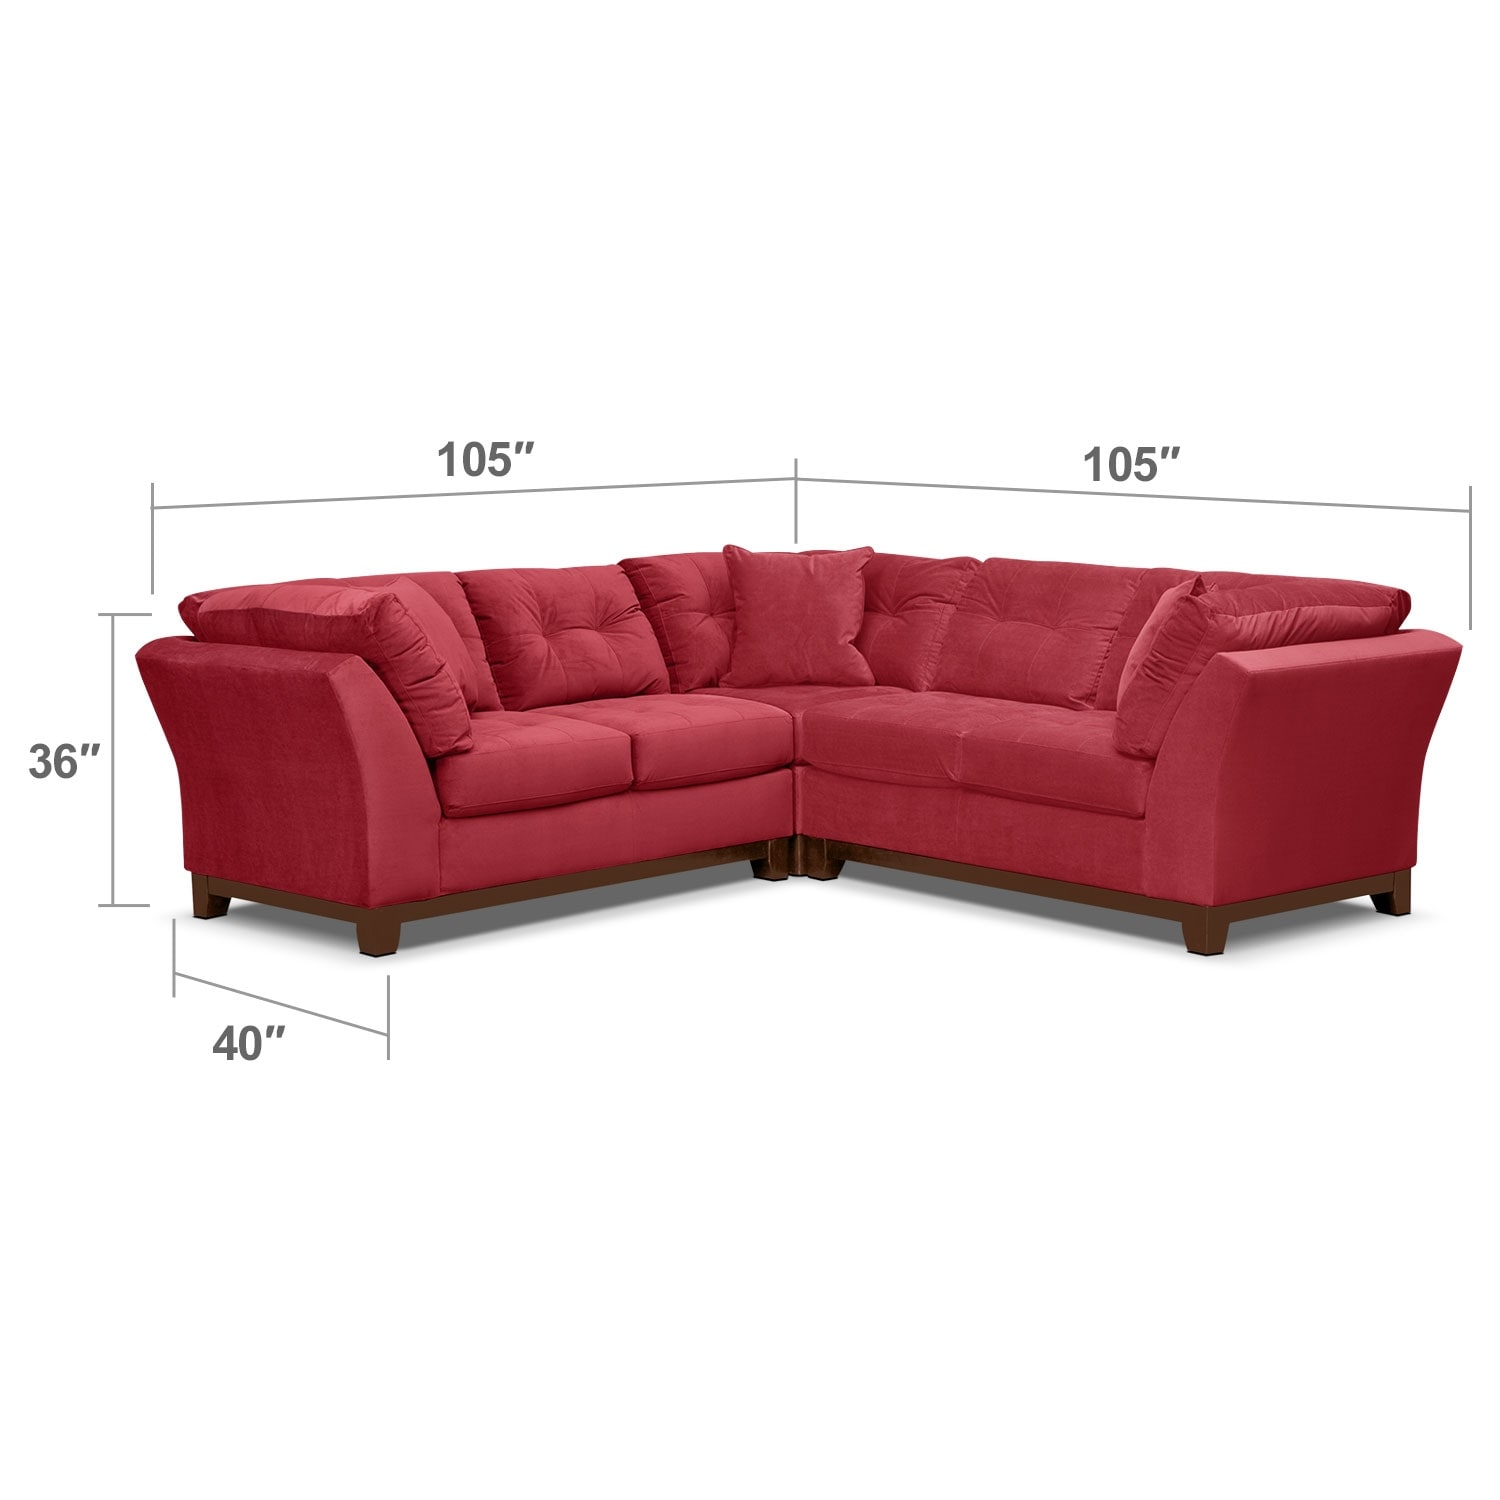 Living Room Furniture - Solace 3-Piece Sectional - Poppy